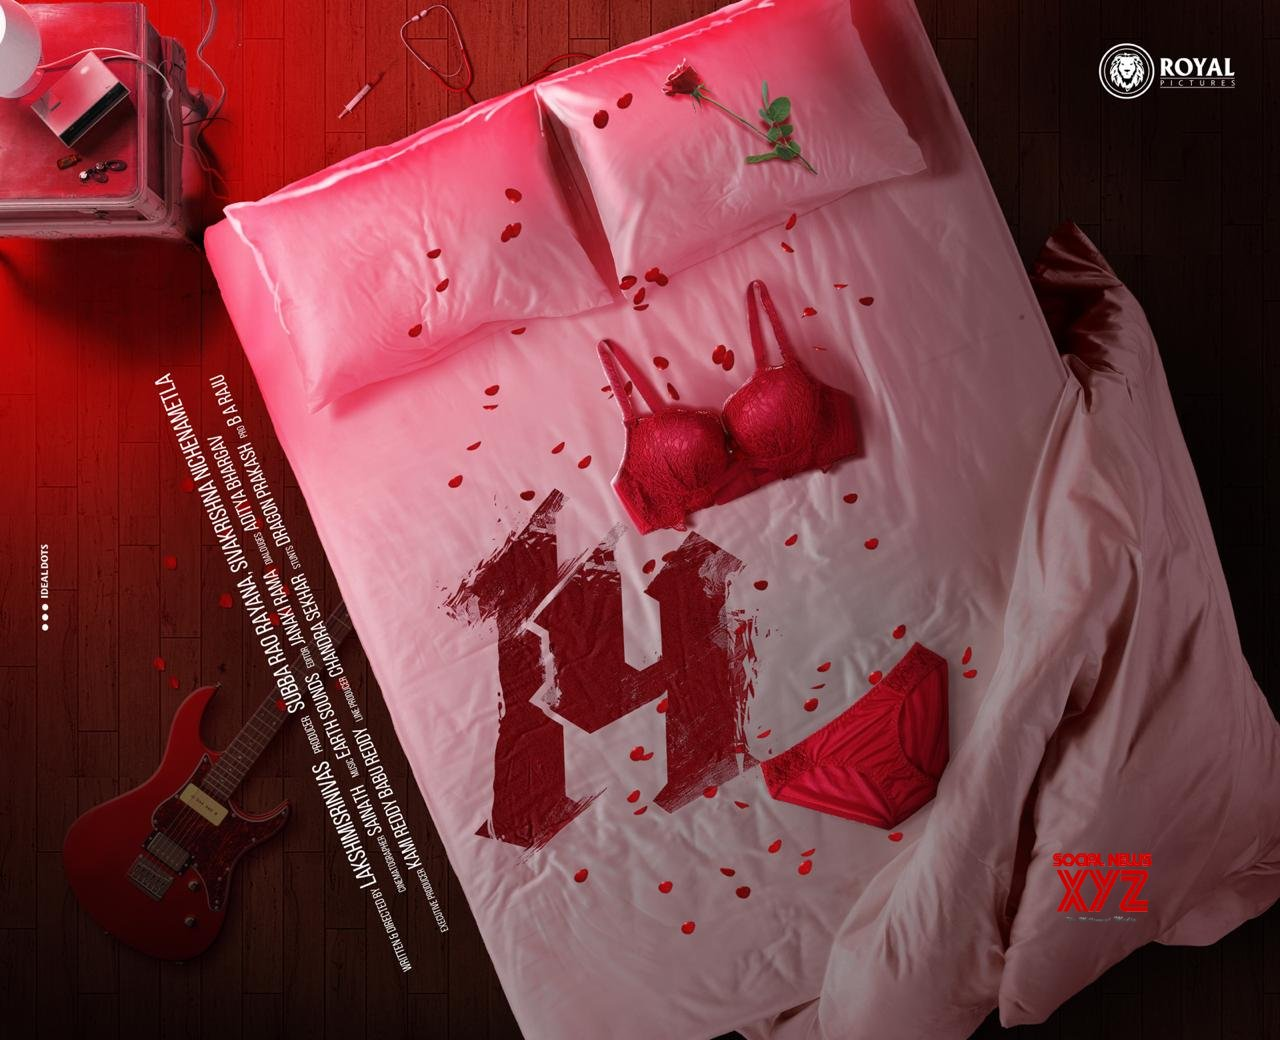 14 Movie First Look Motion Poster Is Unveiled On February 14 Valentine's Day